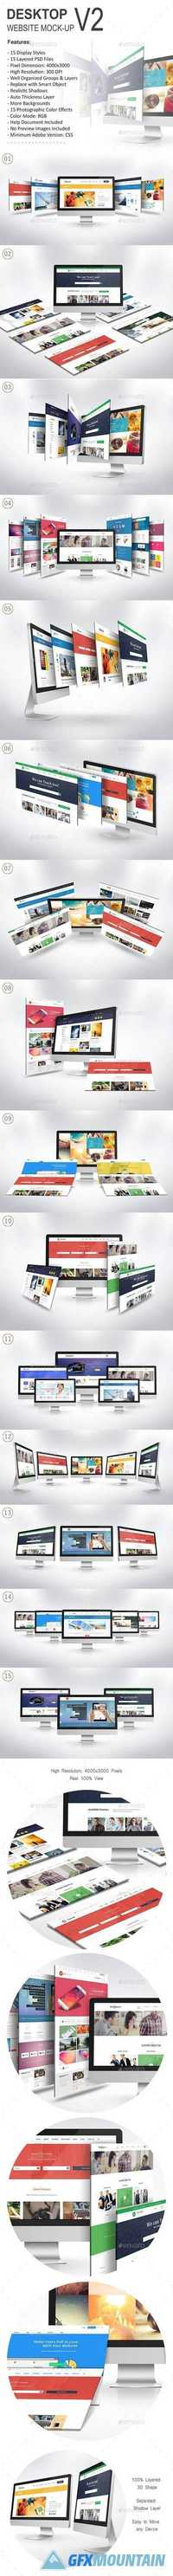 Desktop Website Mock-Up V2 - 20275229